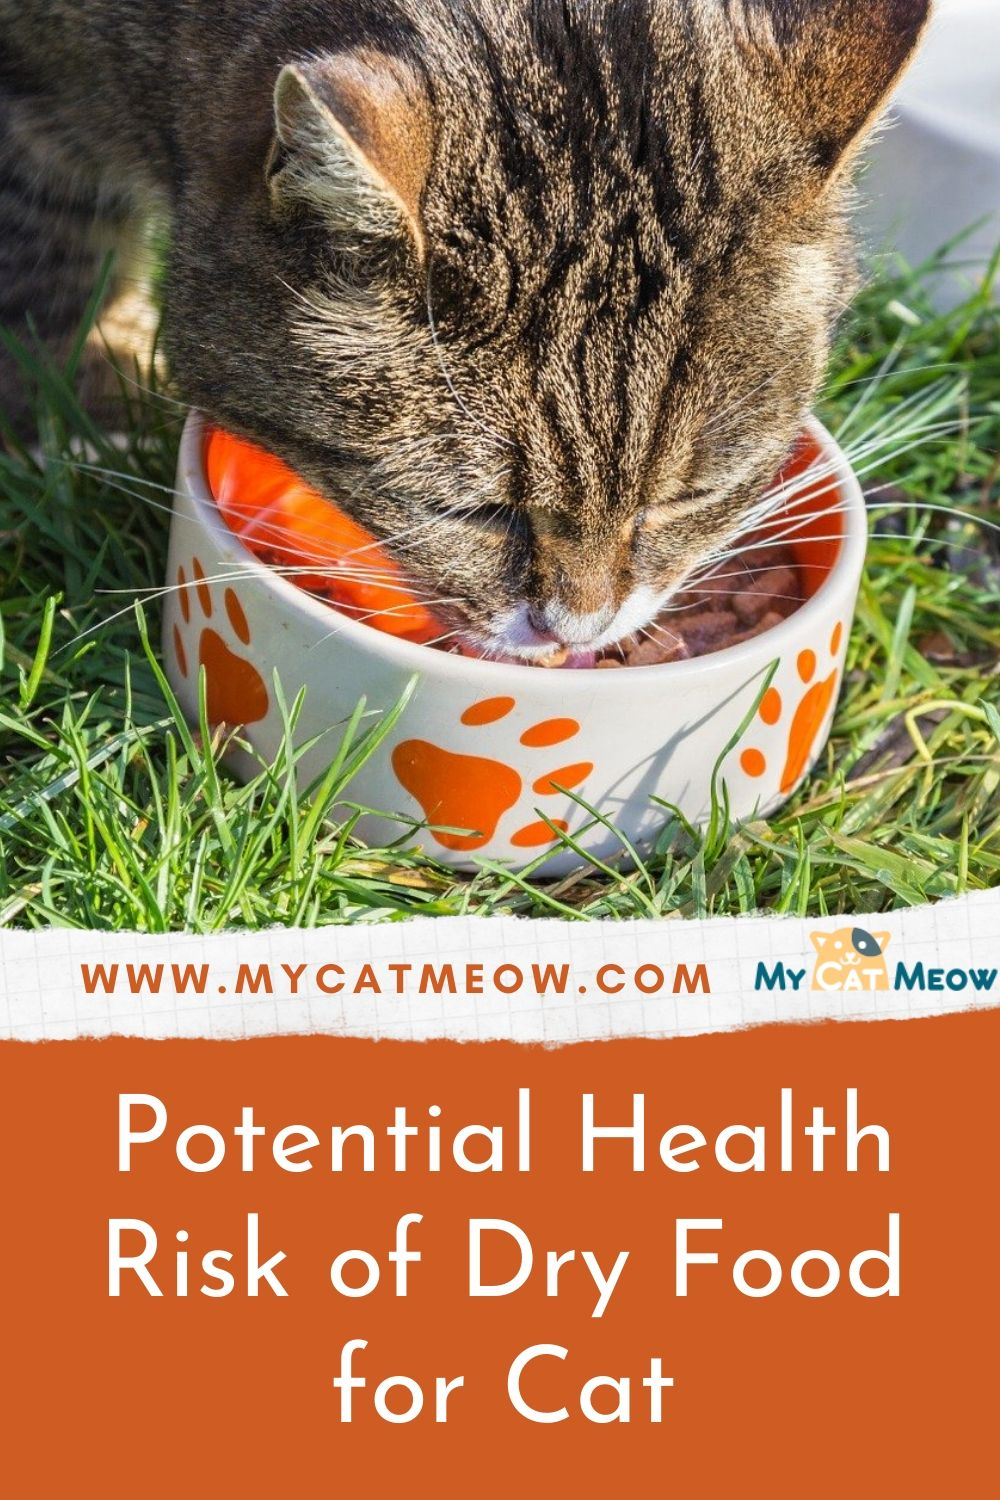 Potential Health Risk of Dry Food for Cat